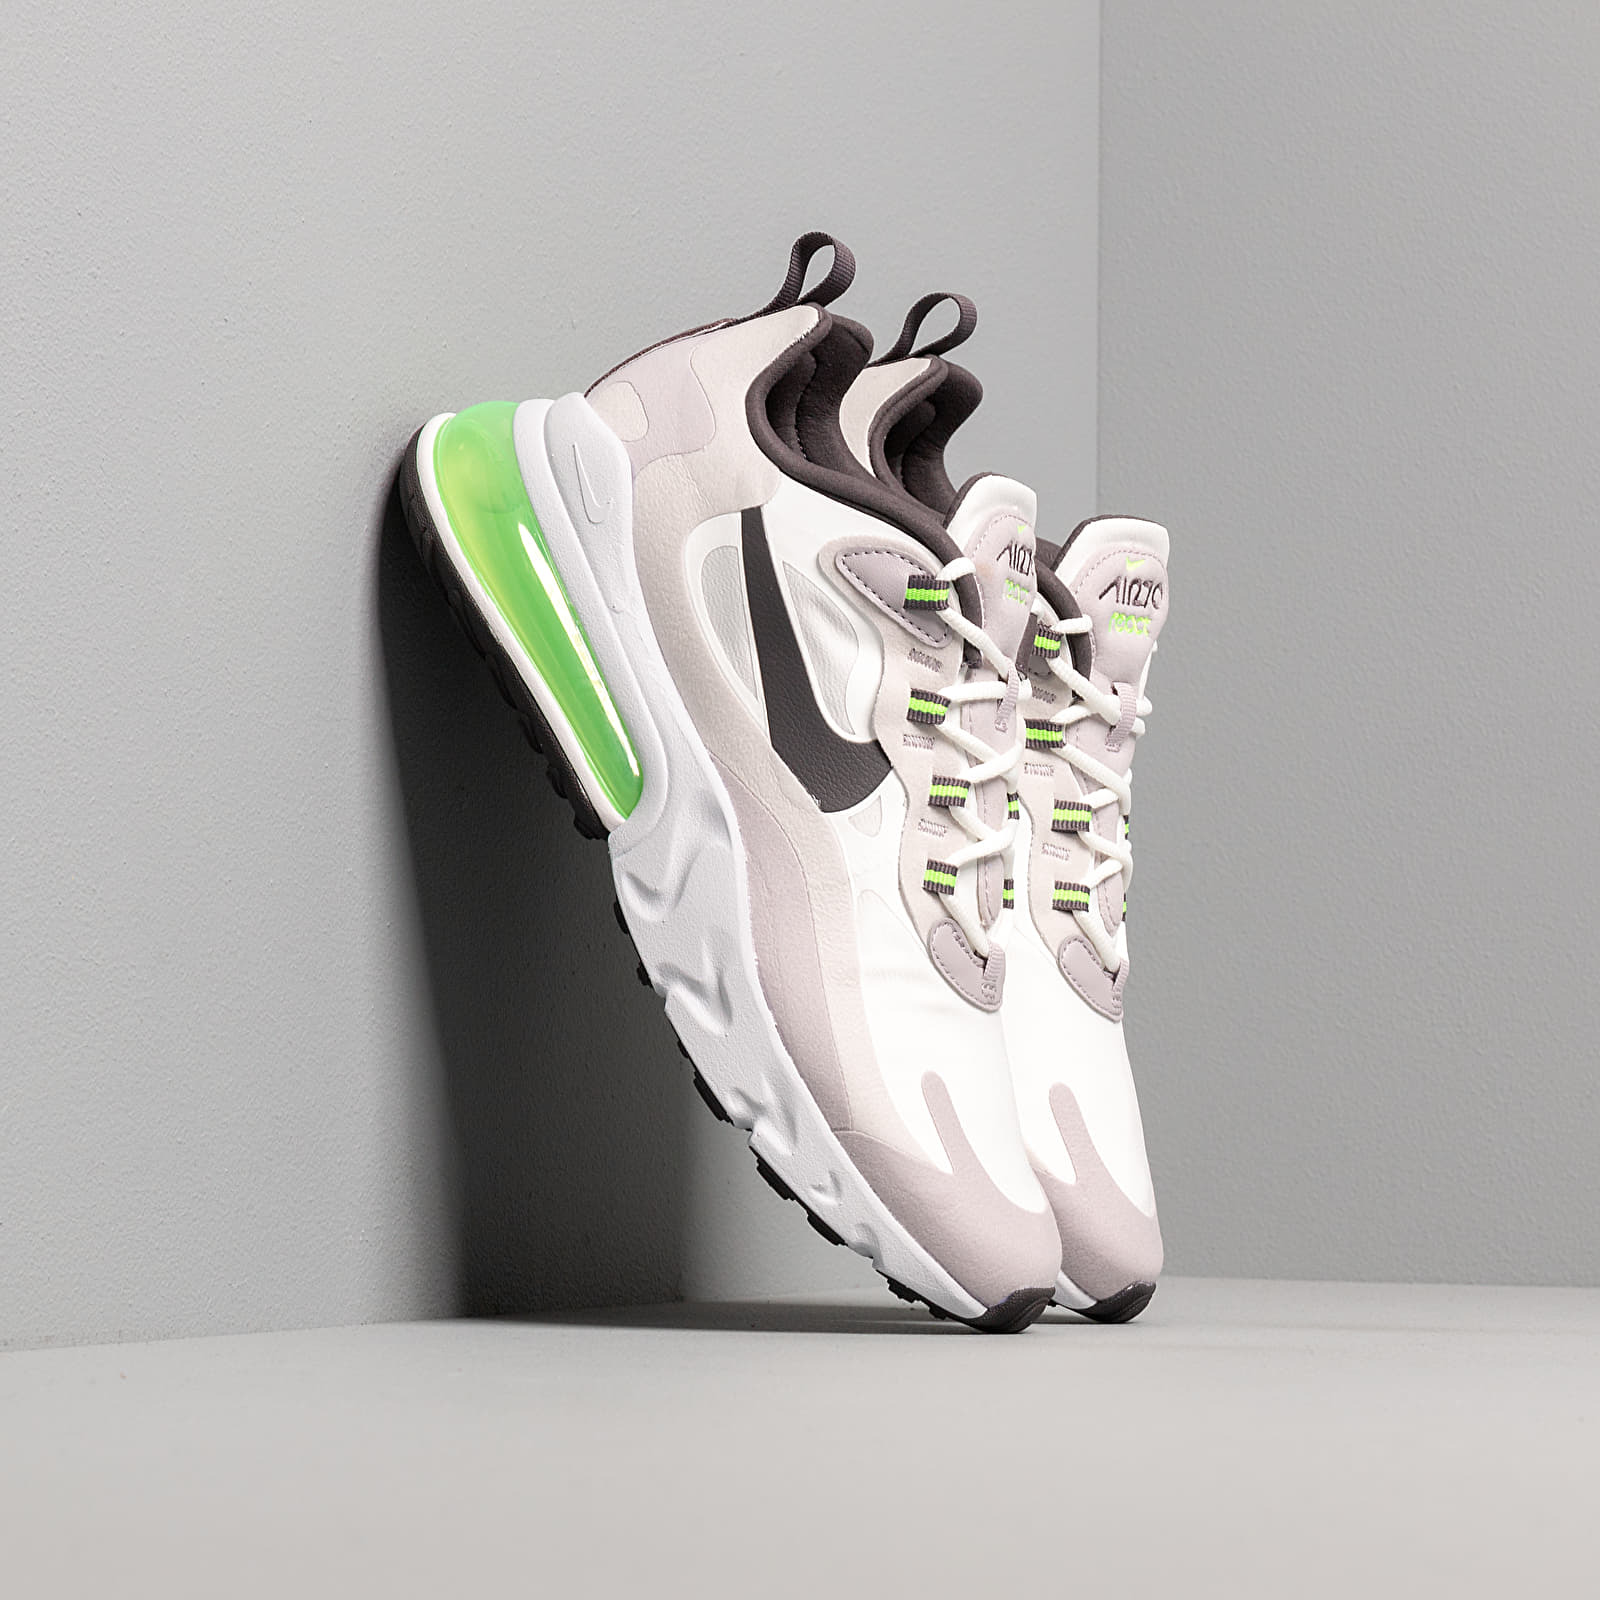 Chaussures et baskets homme Nike Air Max 270 React Summit White/ Electric Green-Vast Grey